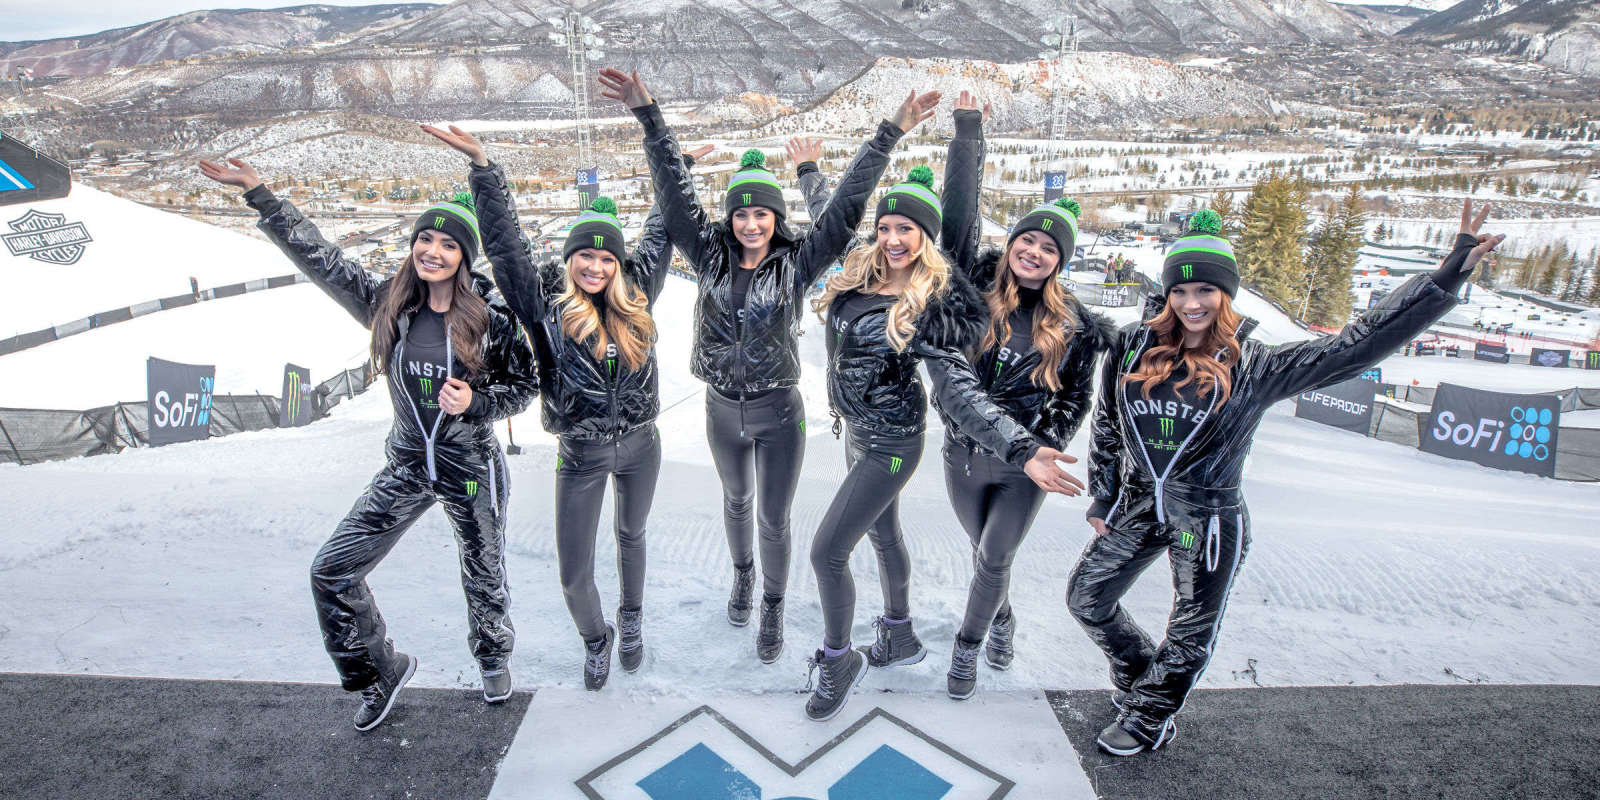 Monster Girls at the 2018 Winter X Games